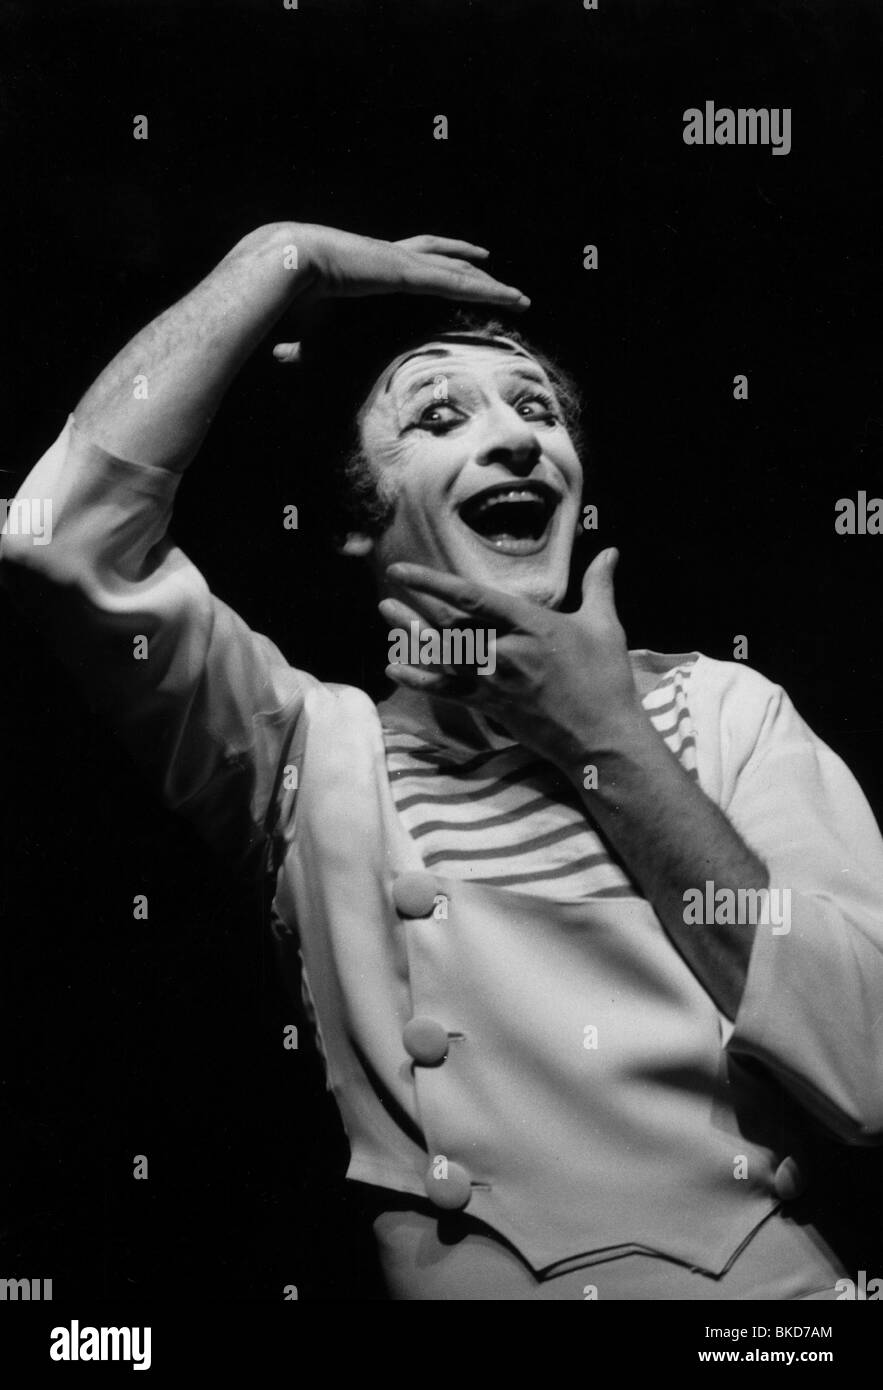 Marceau, Marcel, 22.3.1923 - 22.9.2007, French mime artist, half length, during a performance, 1960s, Additional - Stock Image